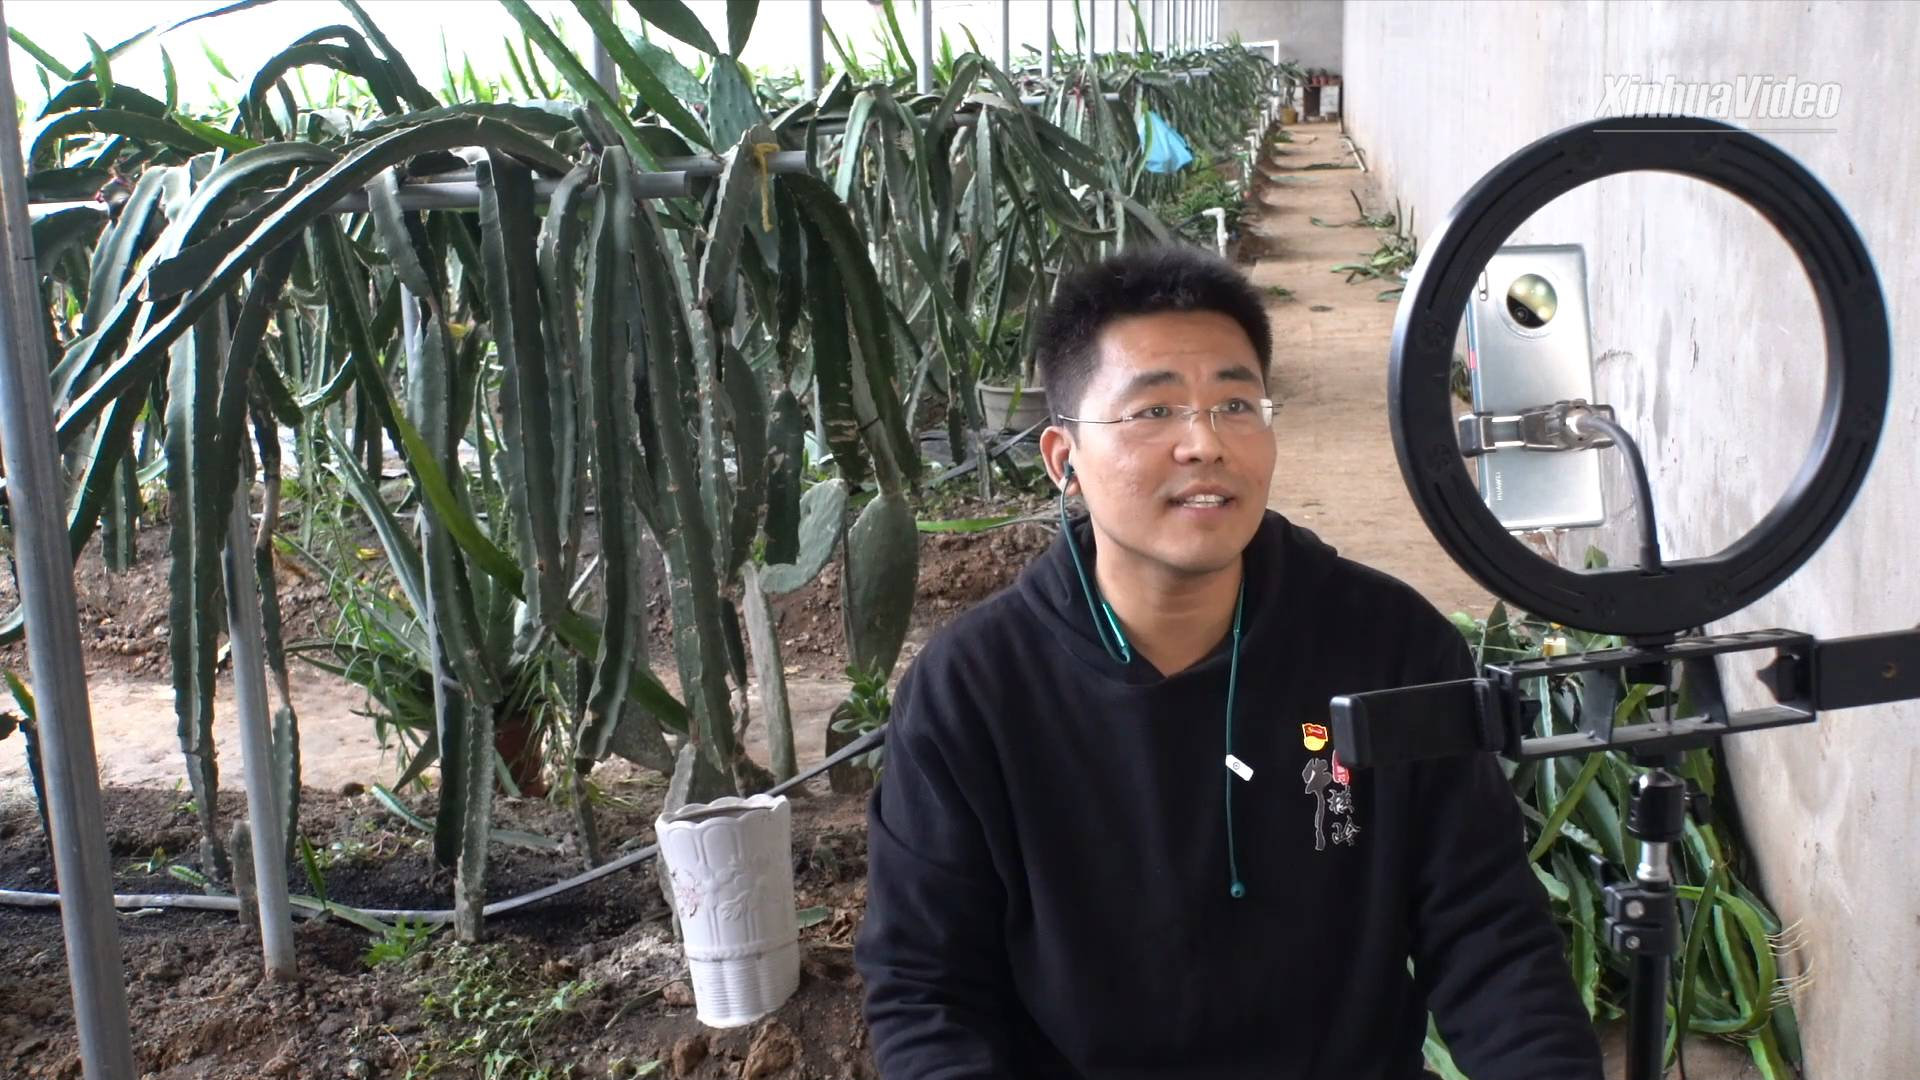 Poverty alleviation official in Henan, China helps villagers get wealthy via livestreaming